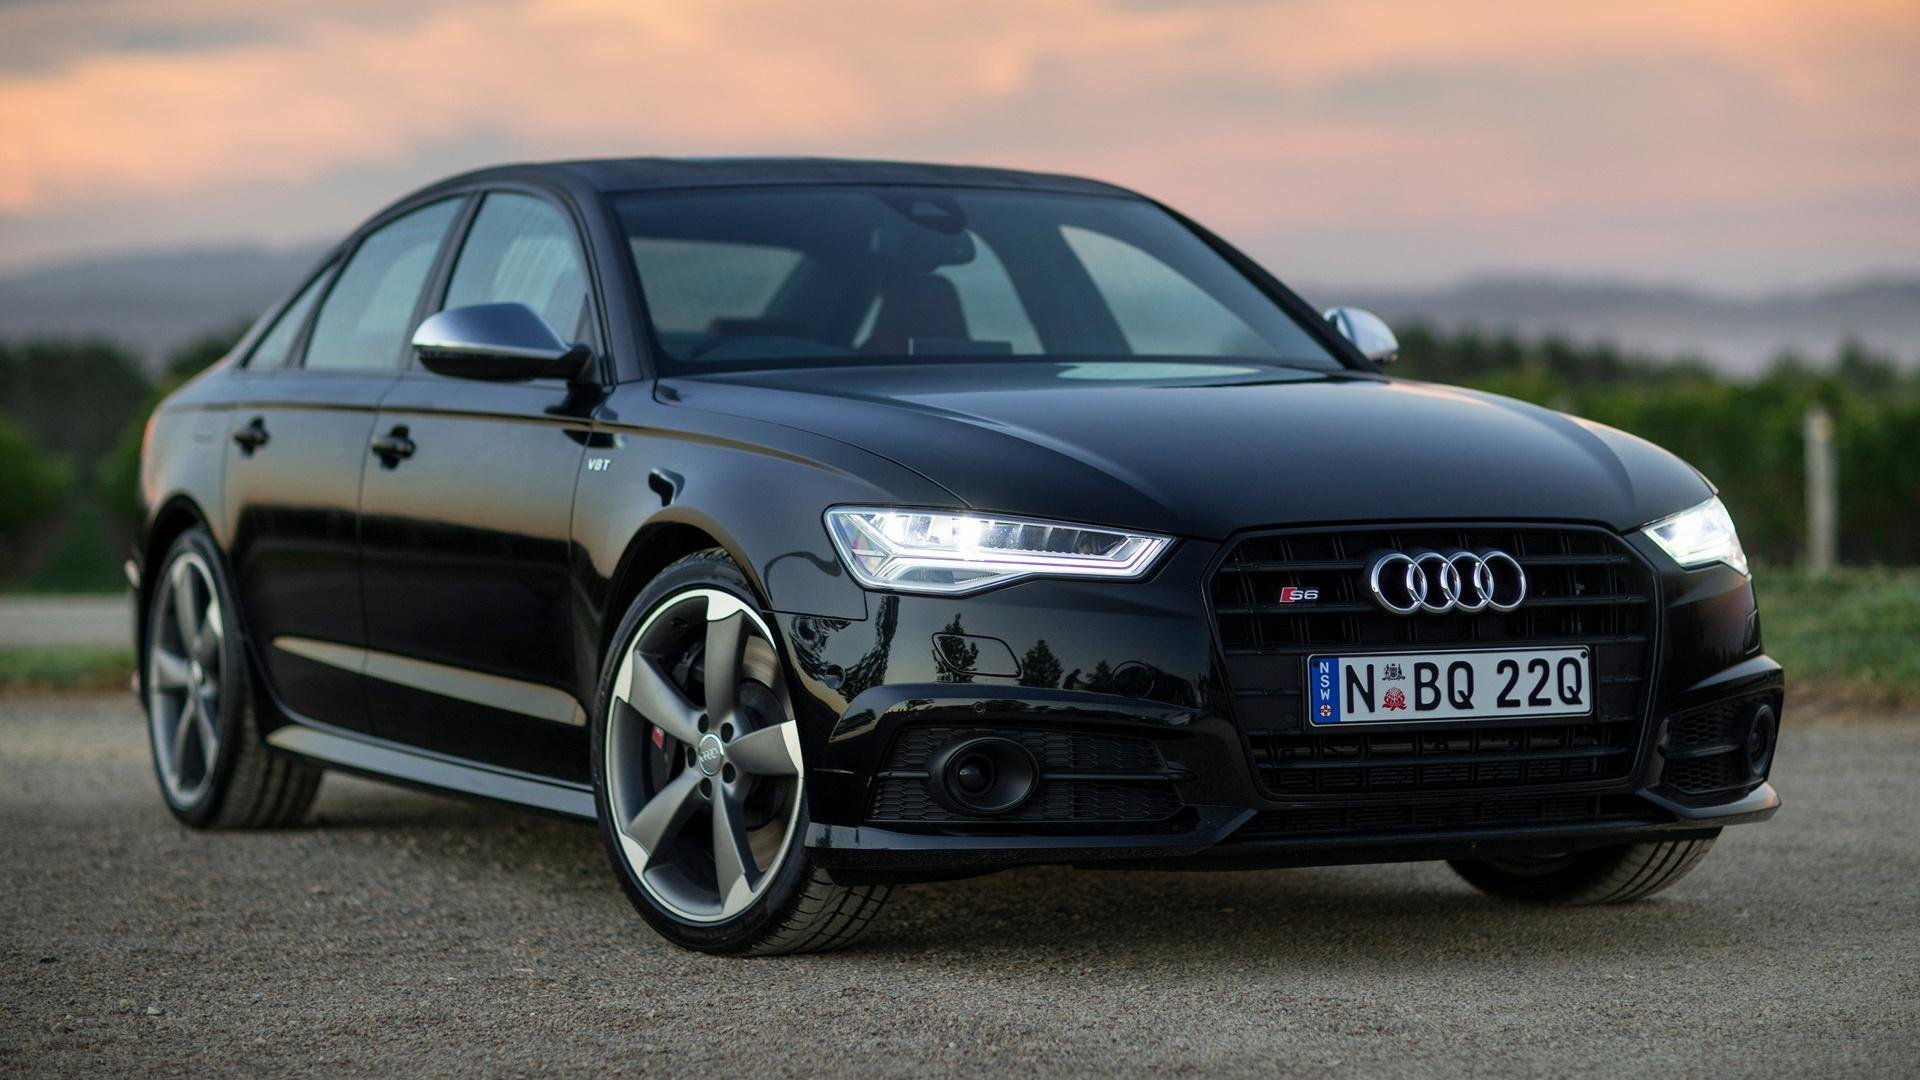 Latest Tag For Audi A6 Hd Wallpapers 1080P Download 1920X1080 Free Download